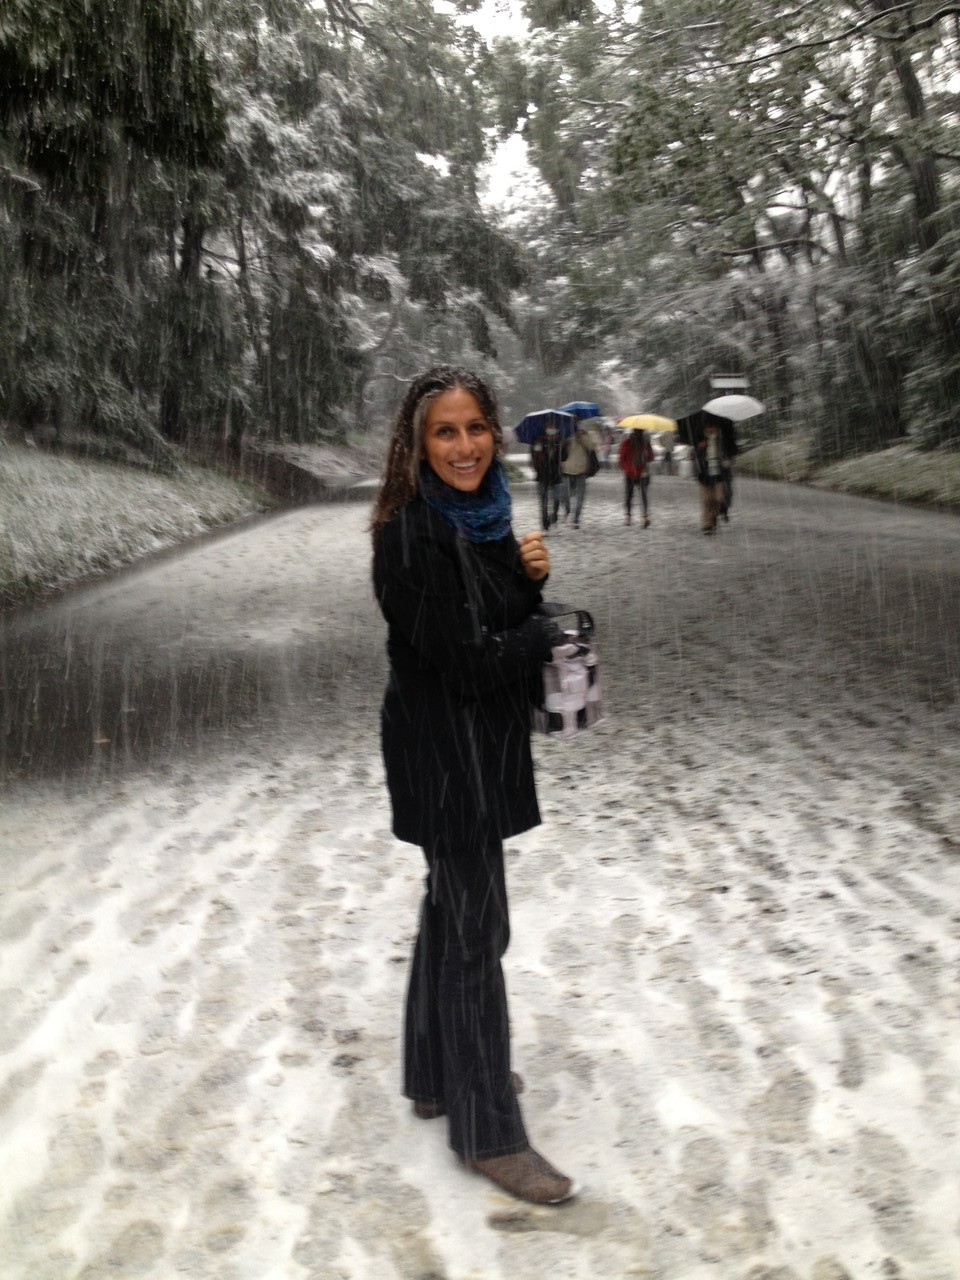 Adriana loves the snow! — with Adriana Sanchez Zoletto at 明治神宮 (Meiji Shrine).